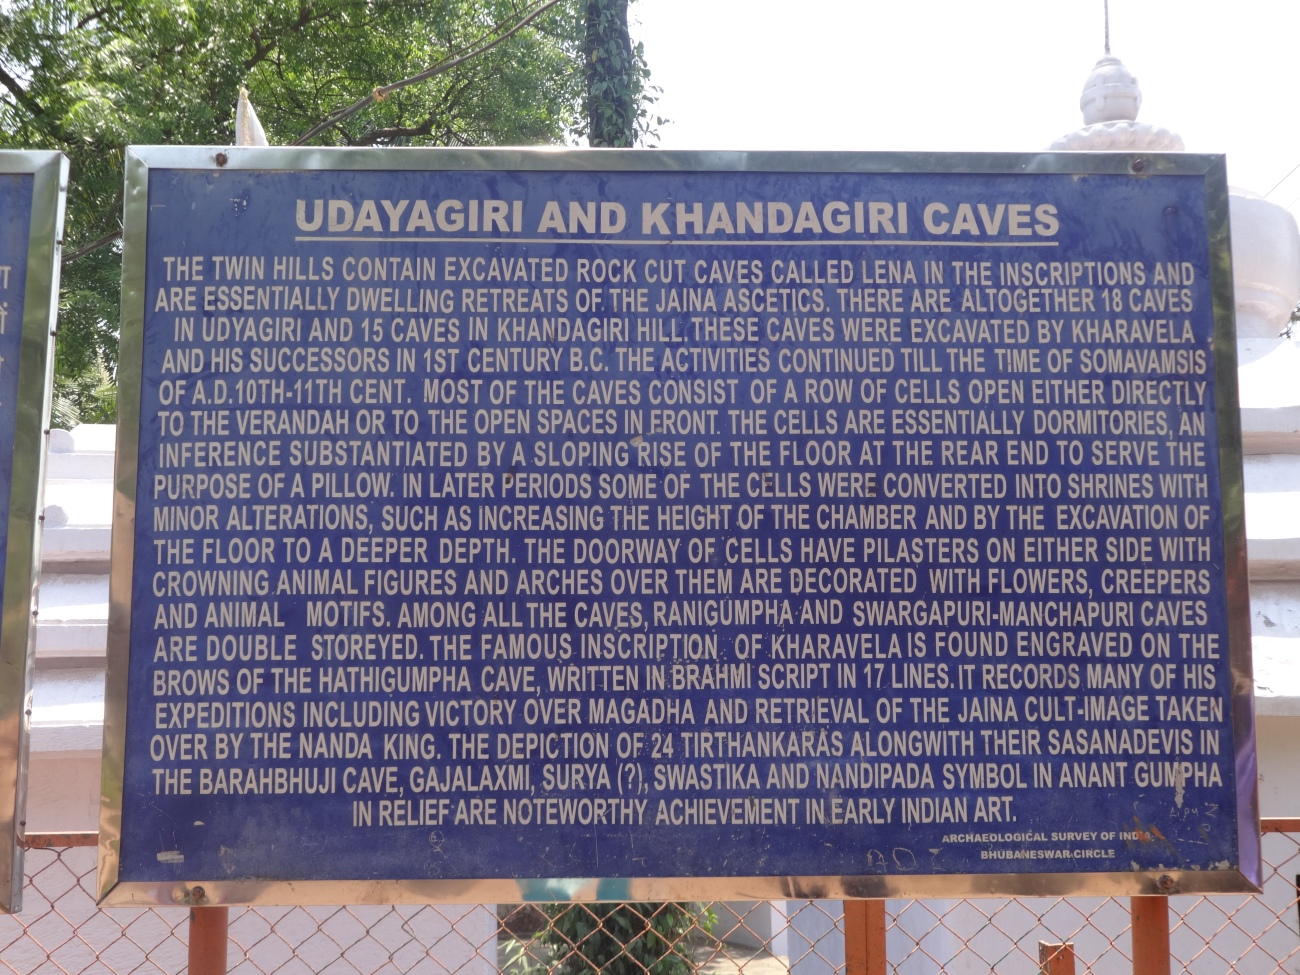 Description about the Caves